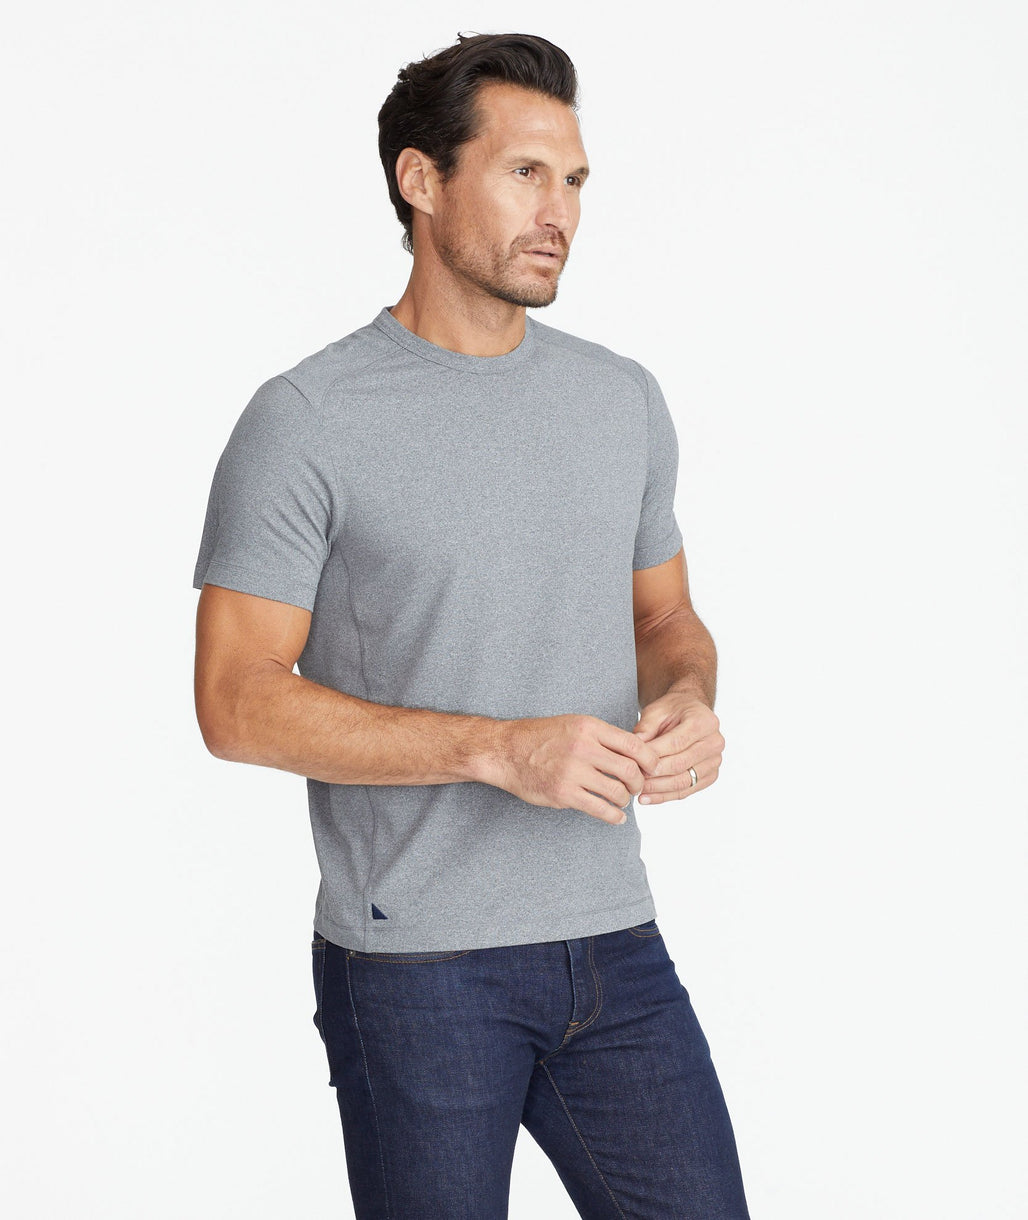 Model wearing a Grey Performance Tee